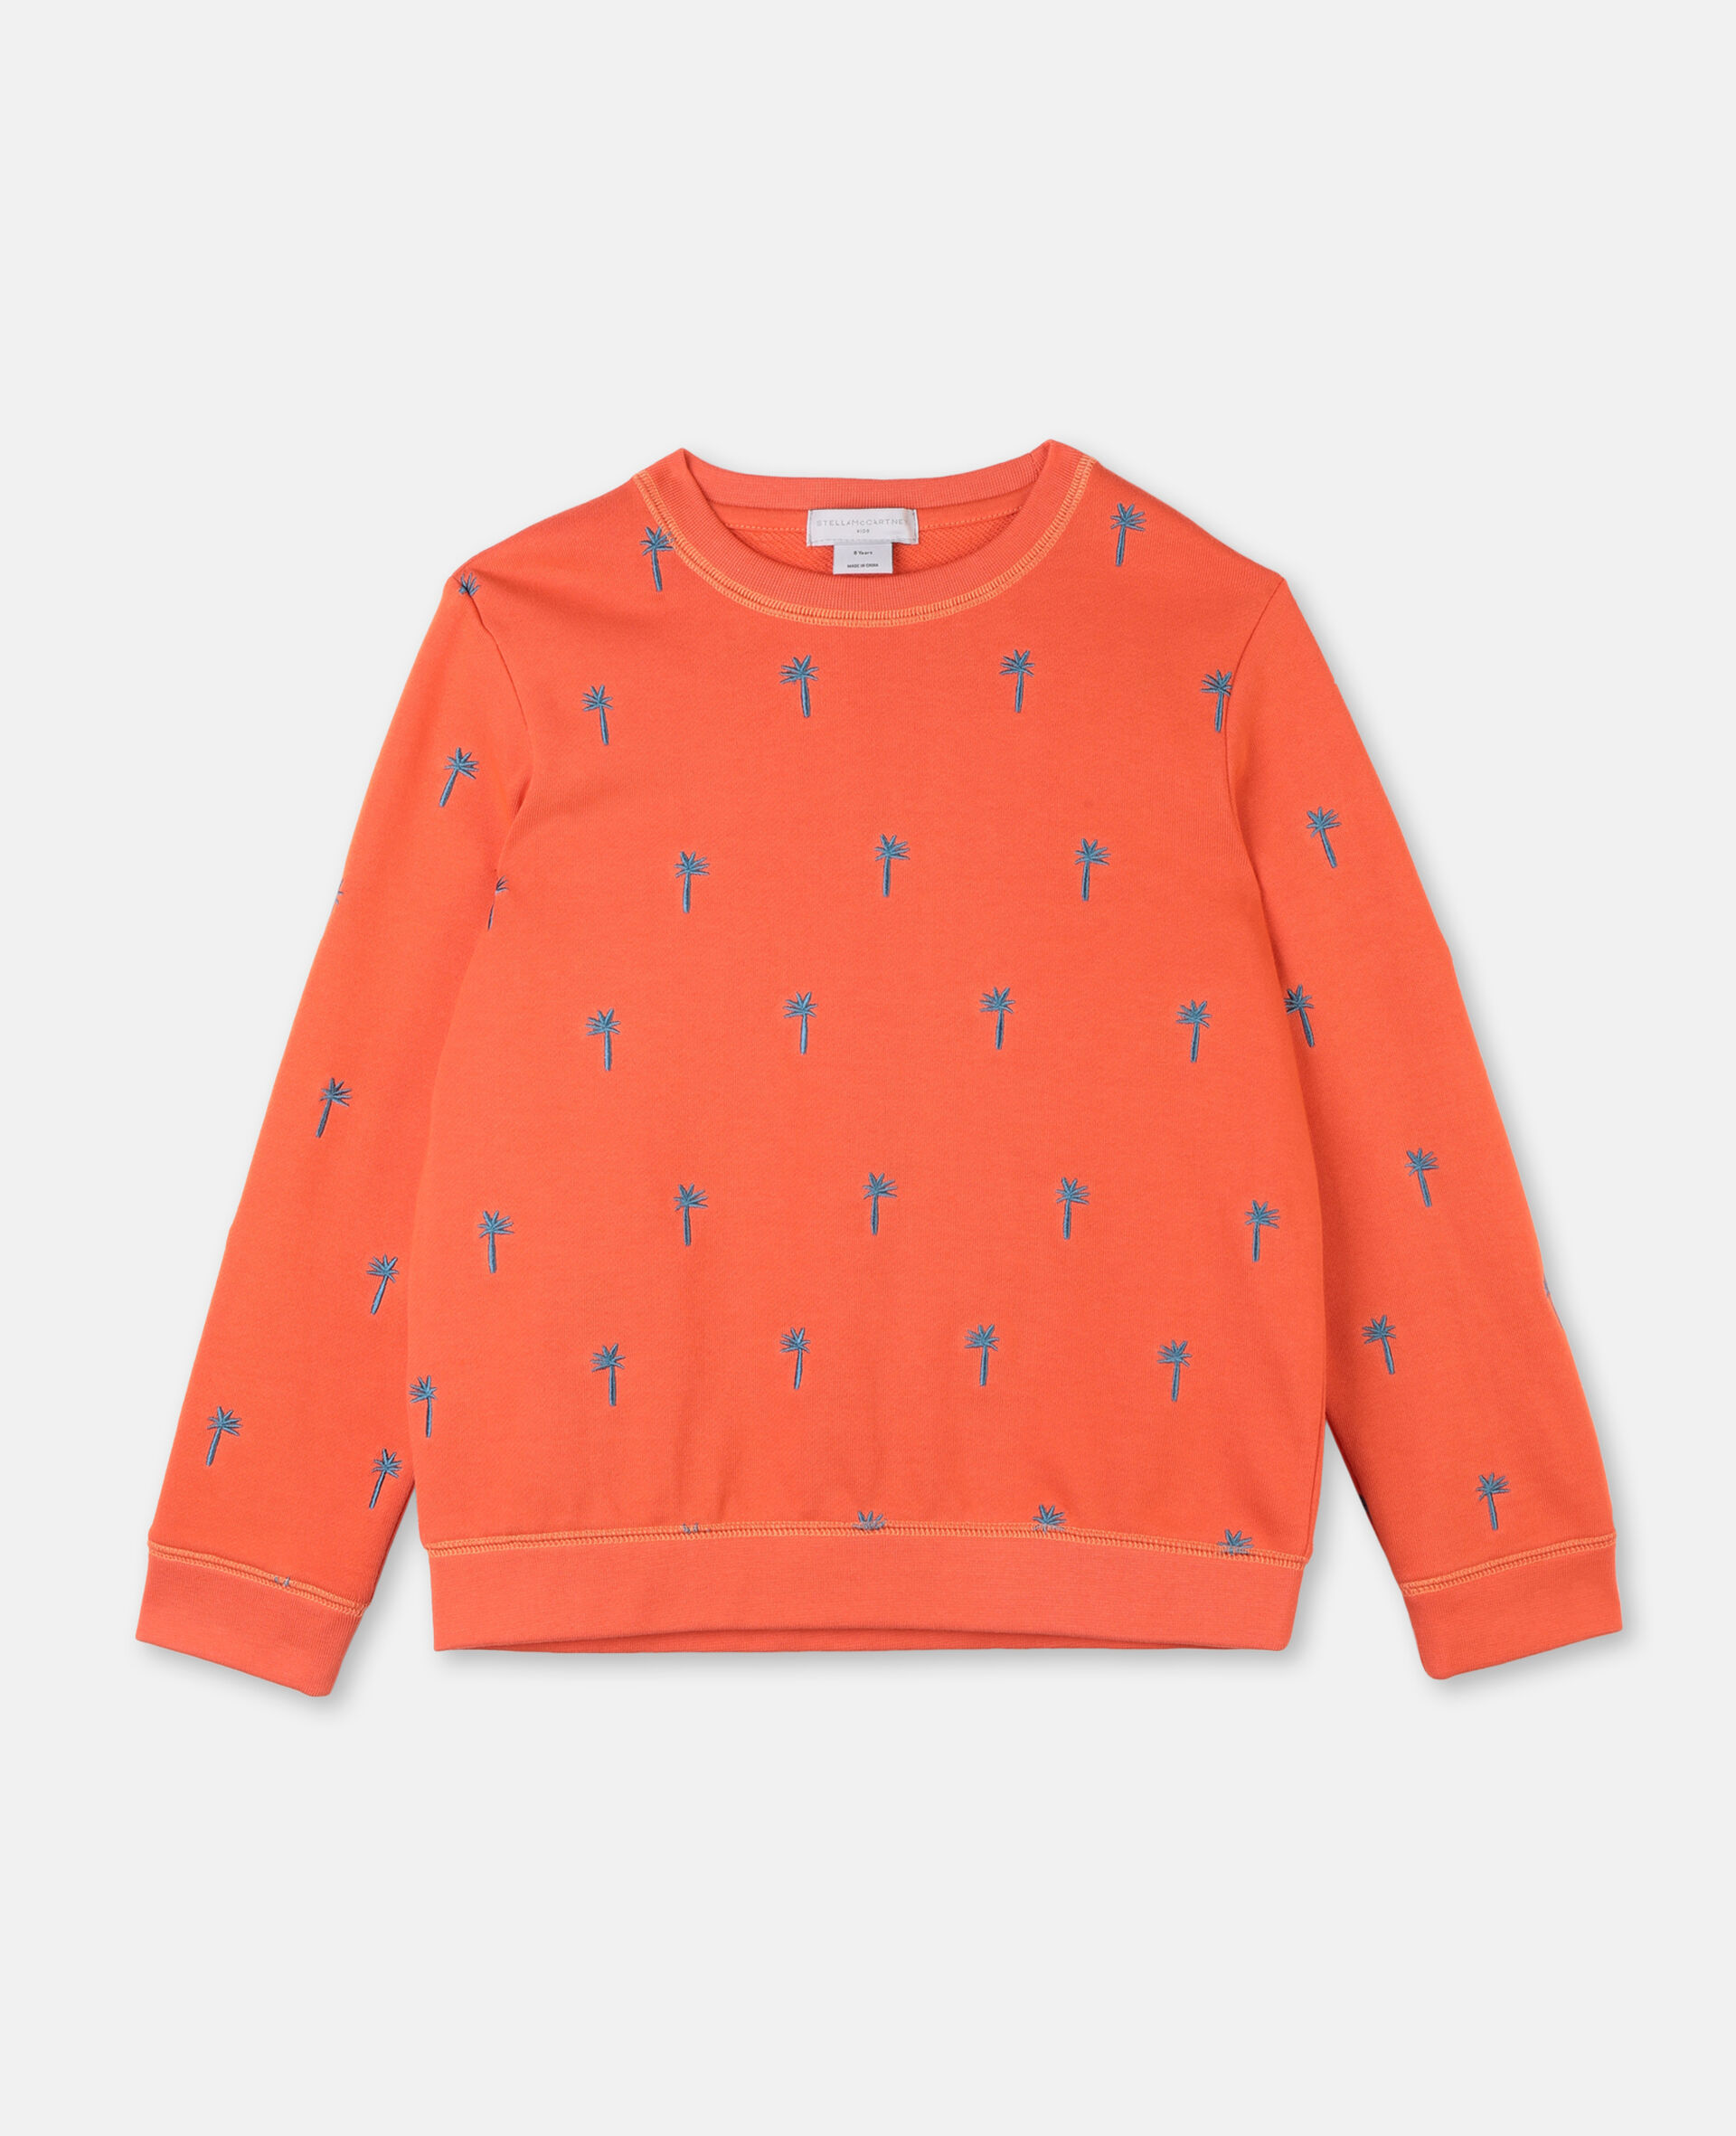 Embroidered Palm Cotton Sweatshirt -Red-large image number 0